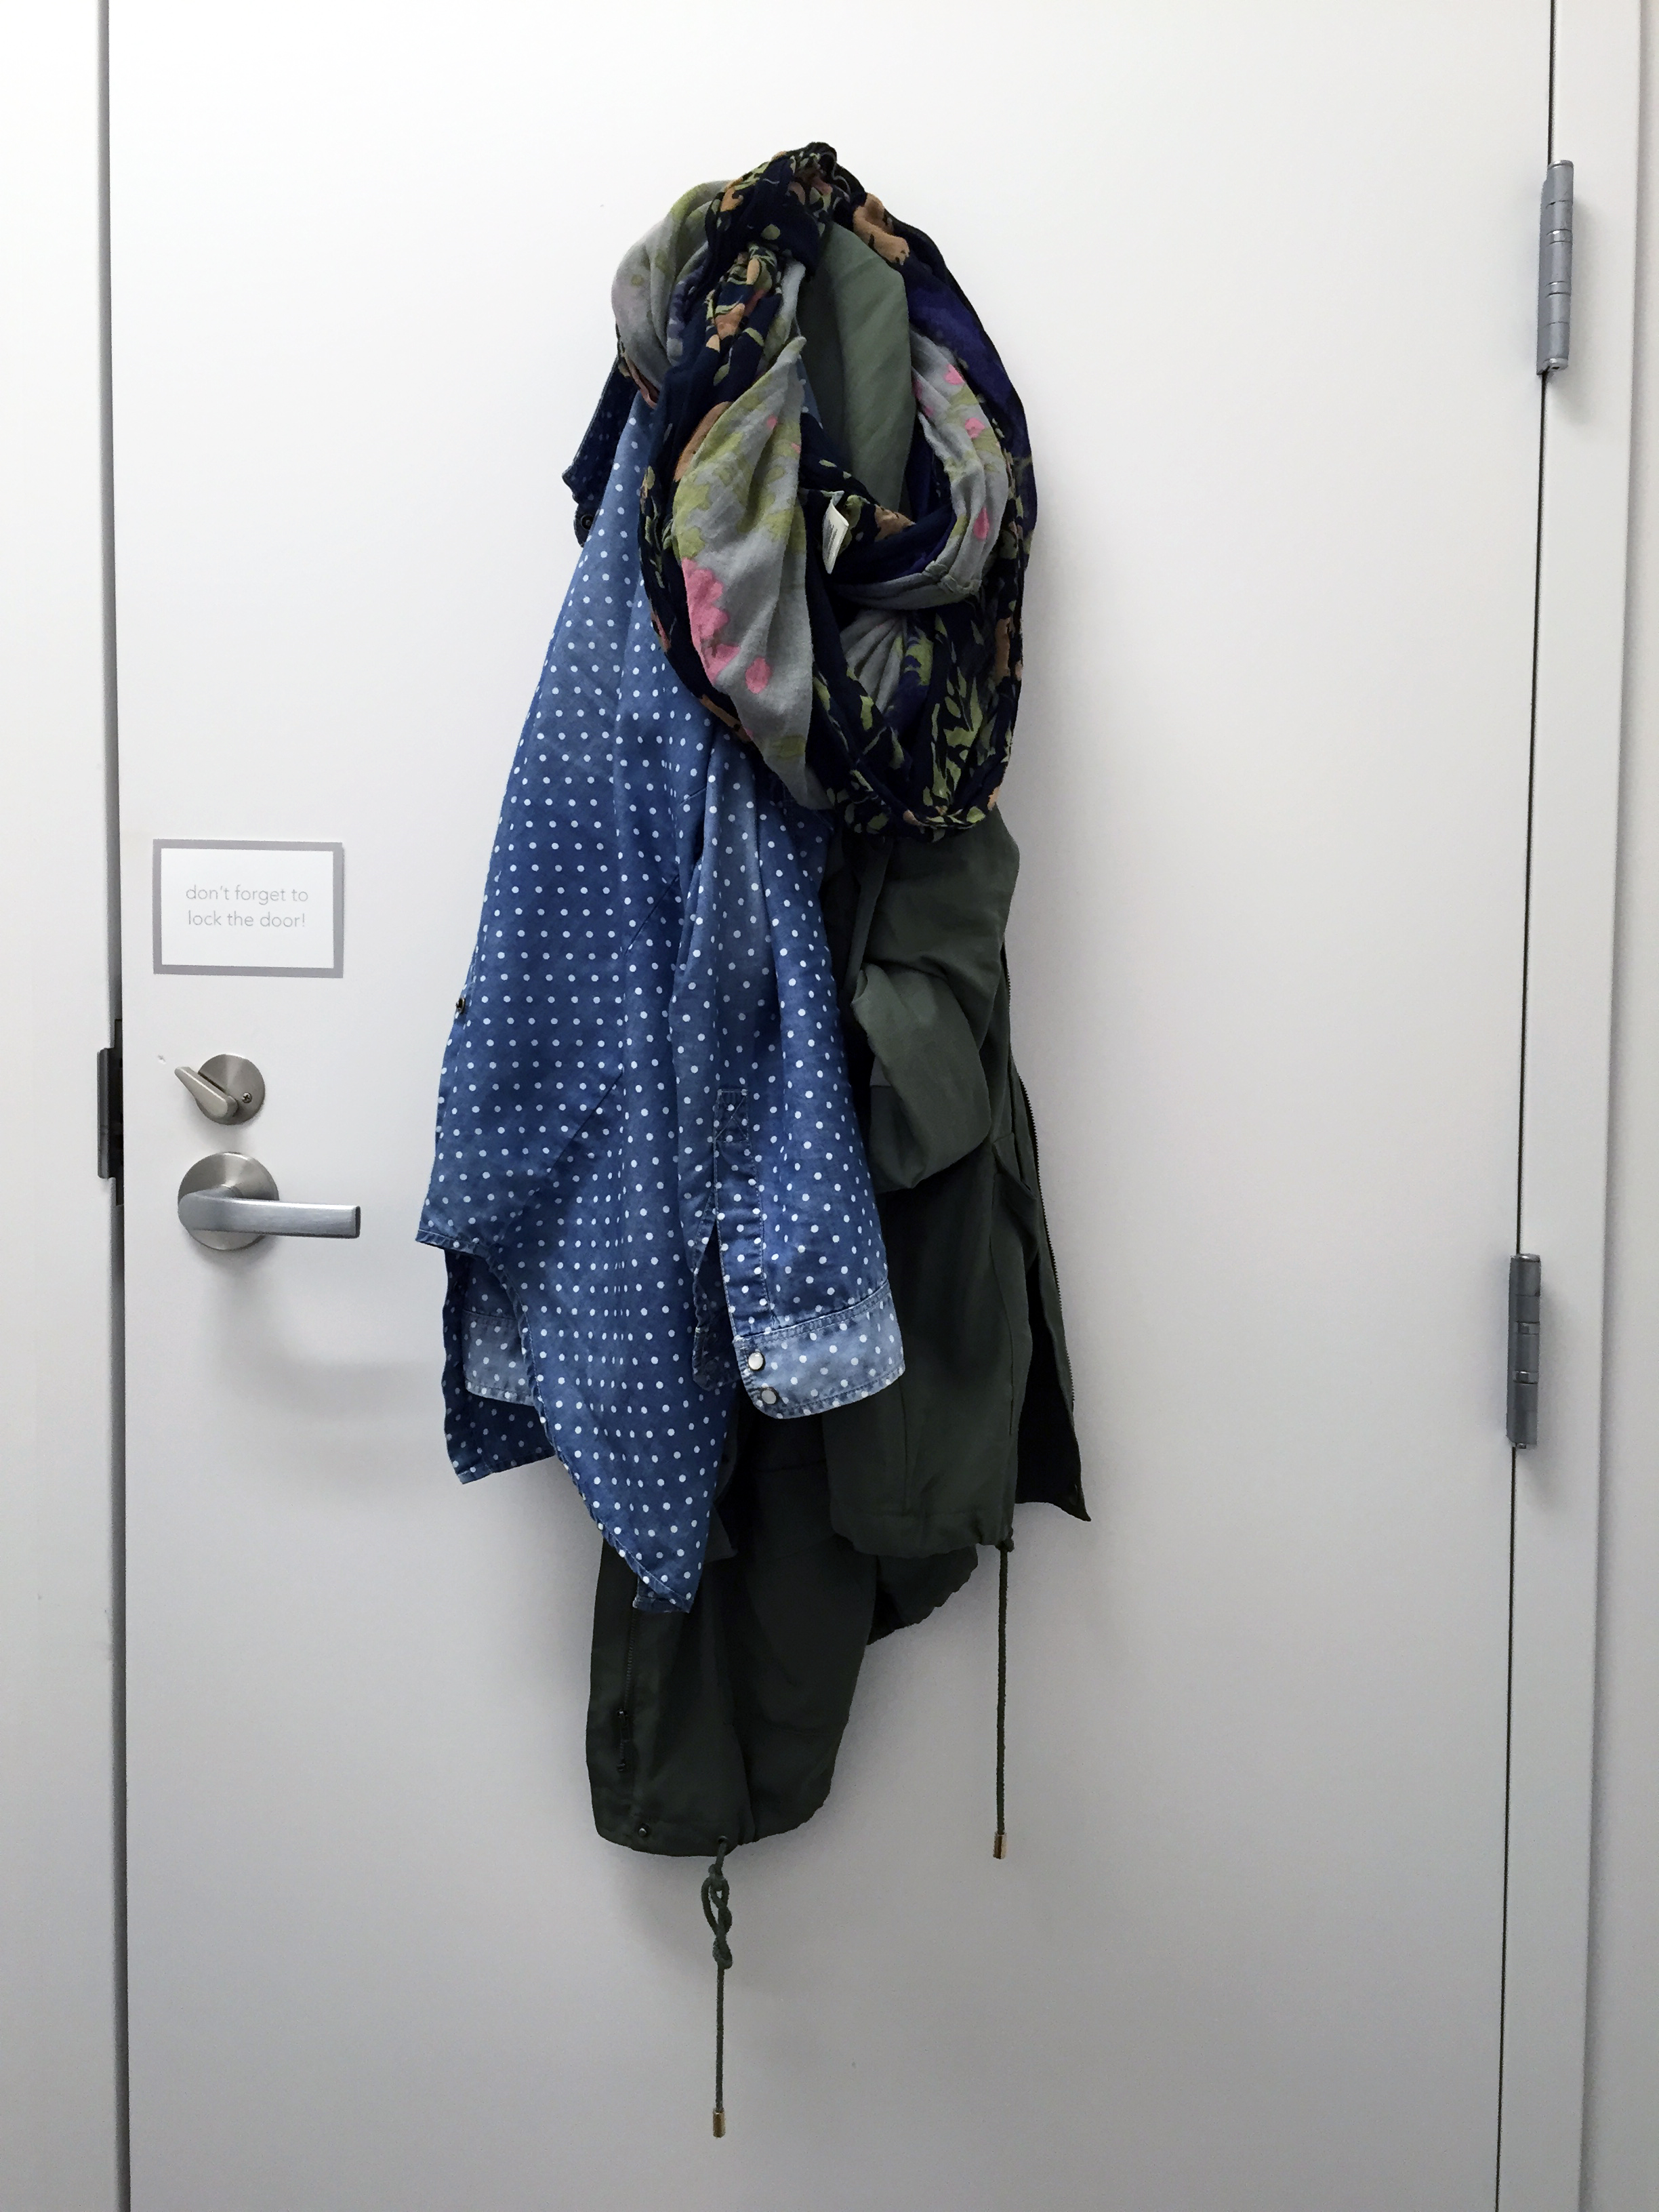 there it is...the top half of everything I am wearing today, hanging on the back of a door in the pumping room...